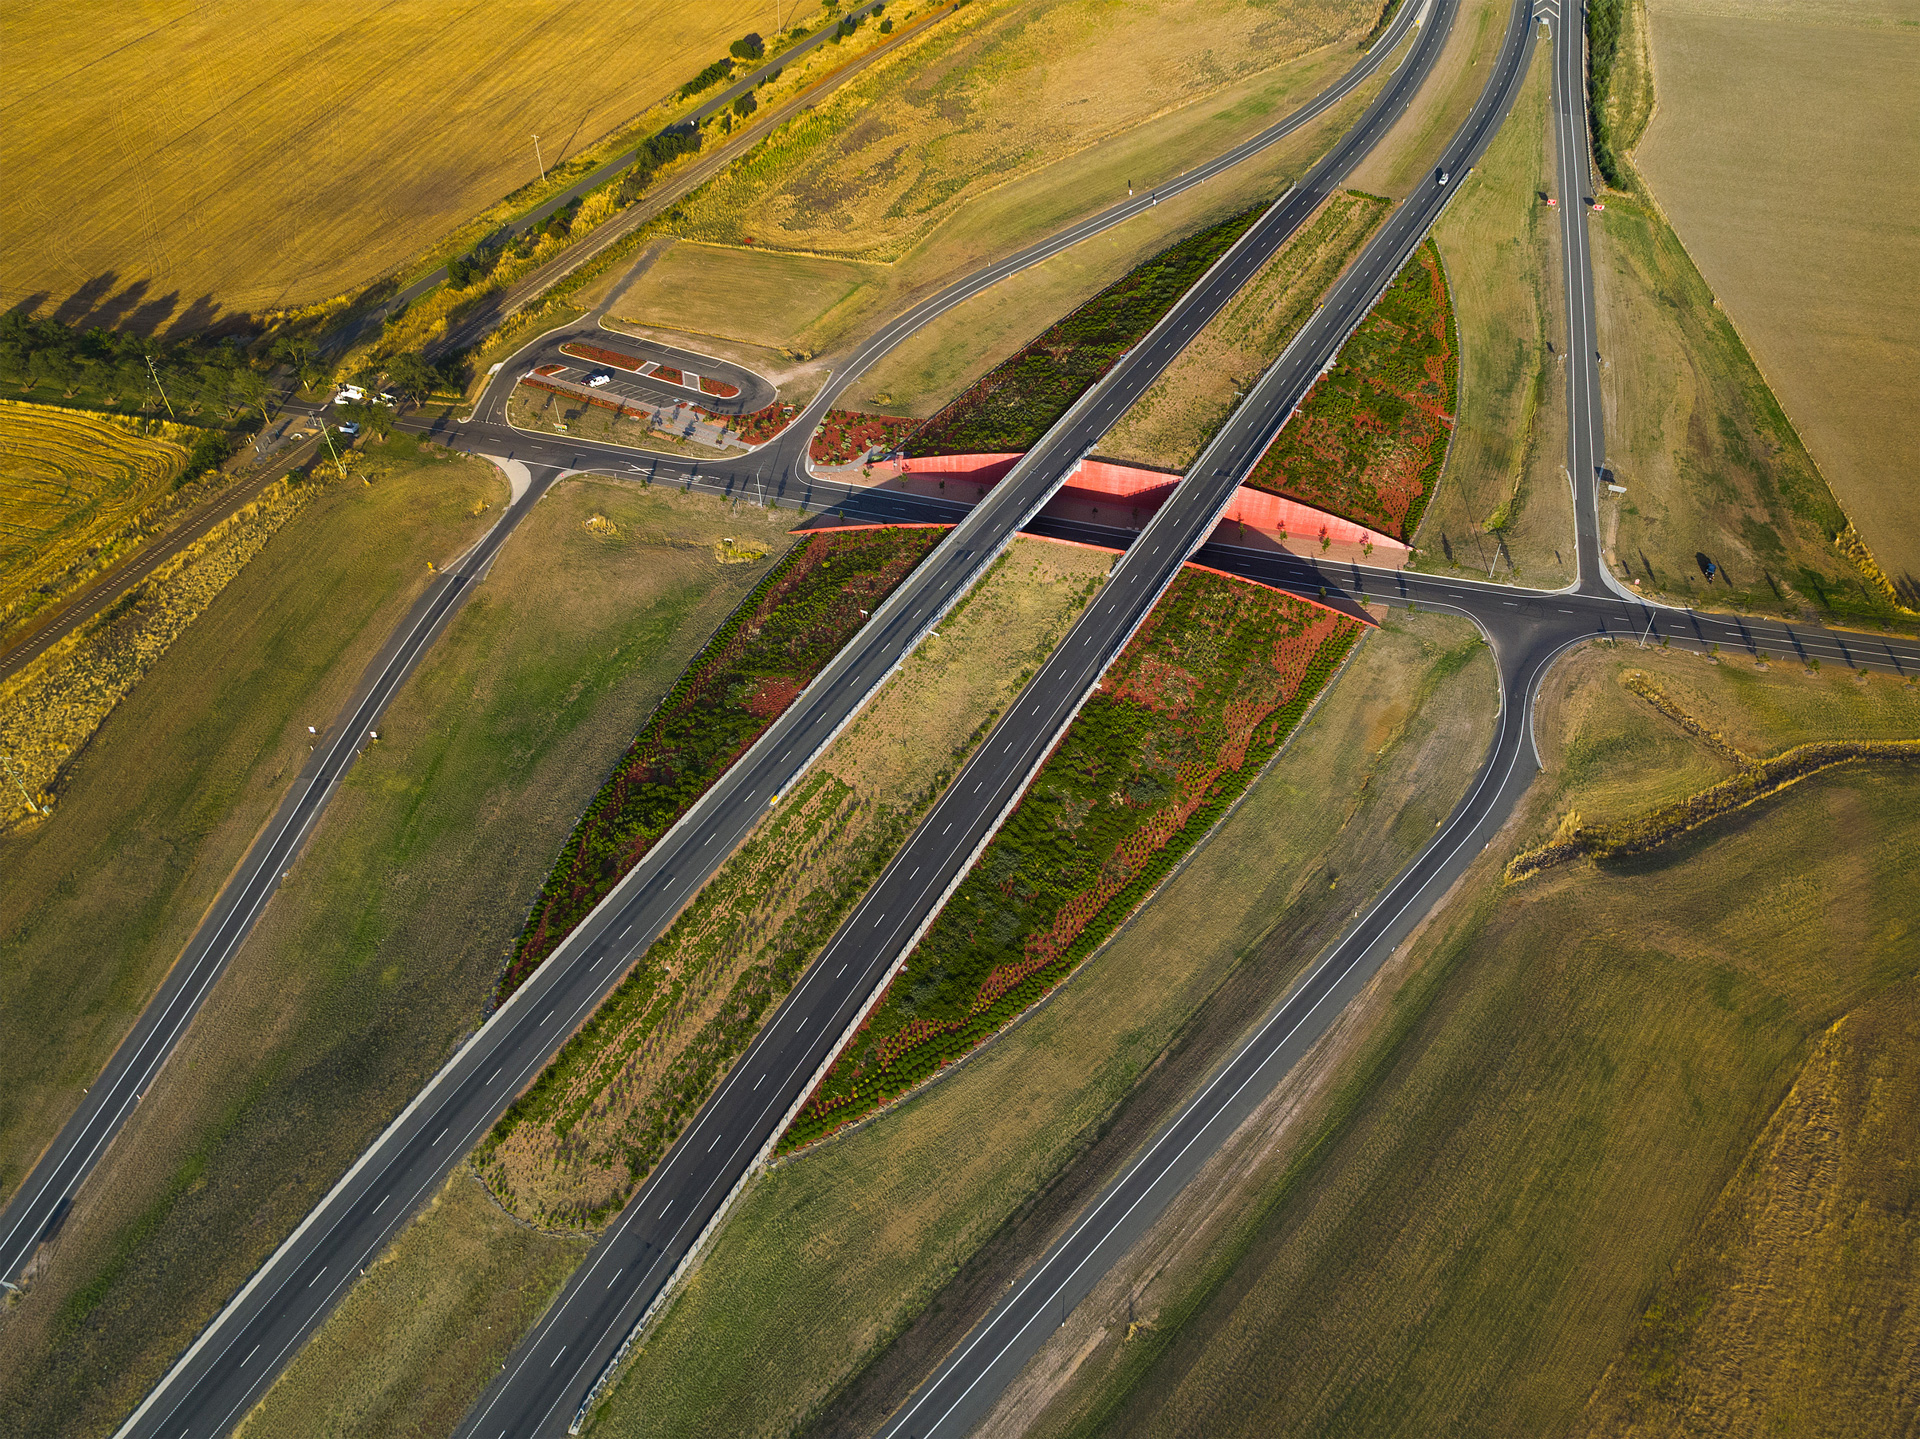 01-Rememberance-Drive-Interchange-John-Gollings.jpg